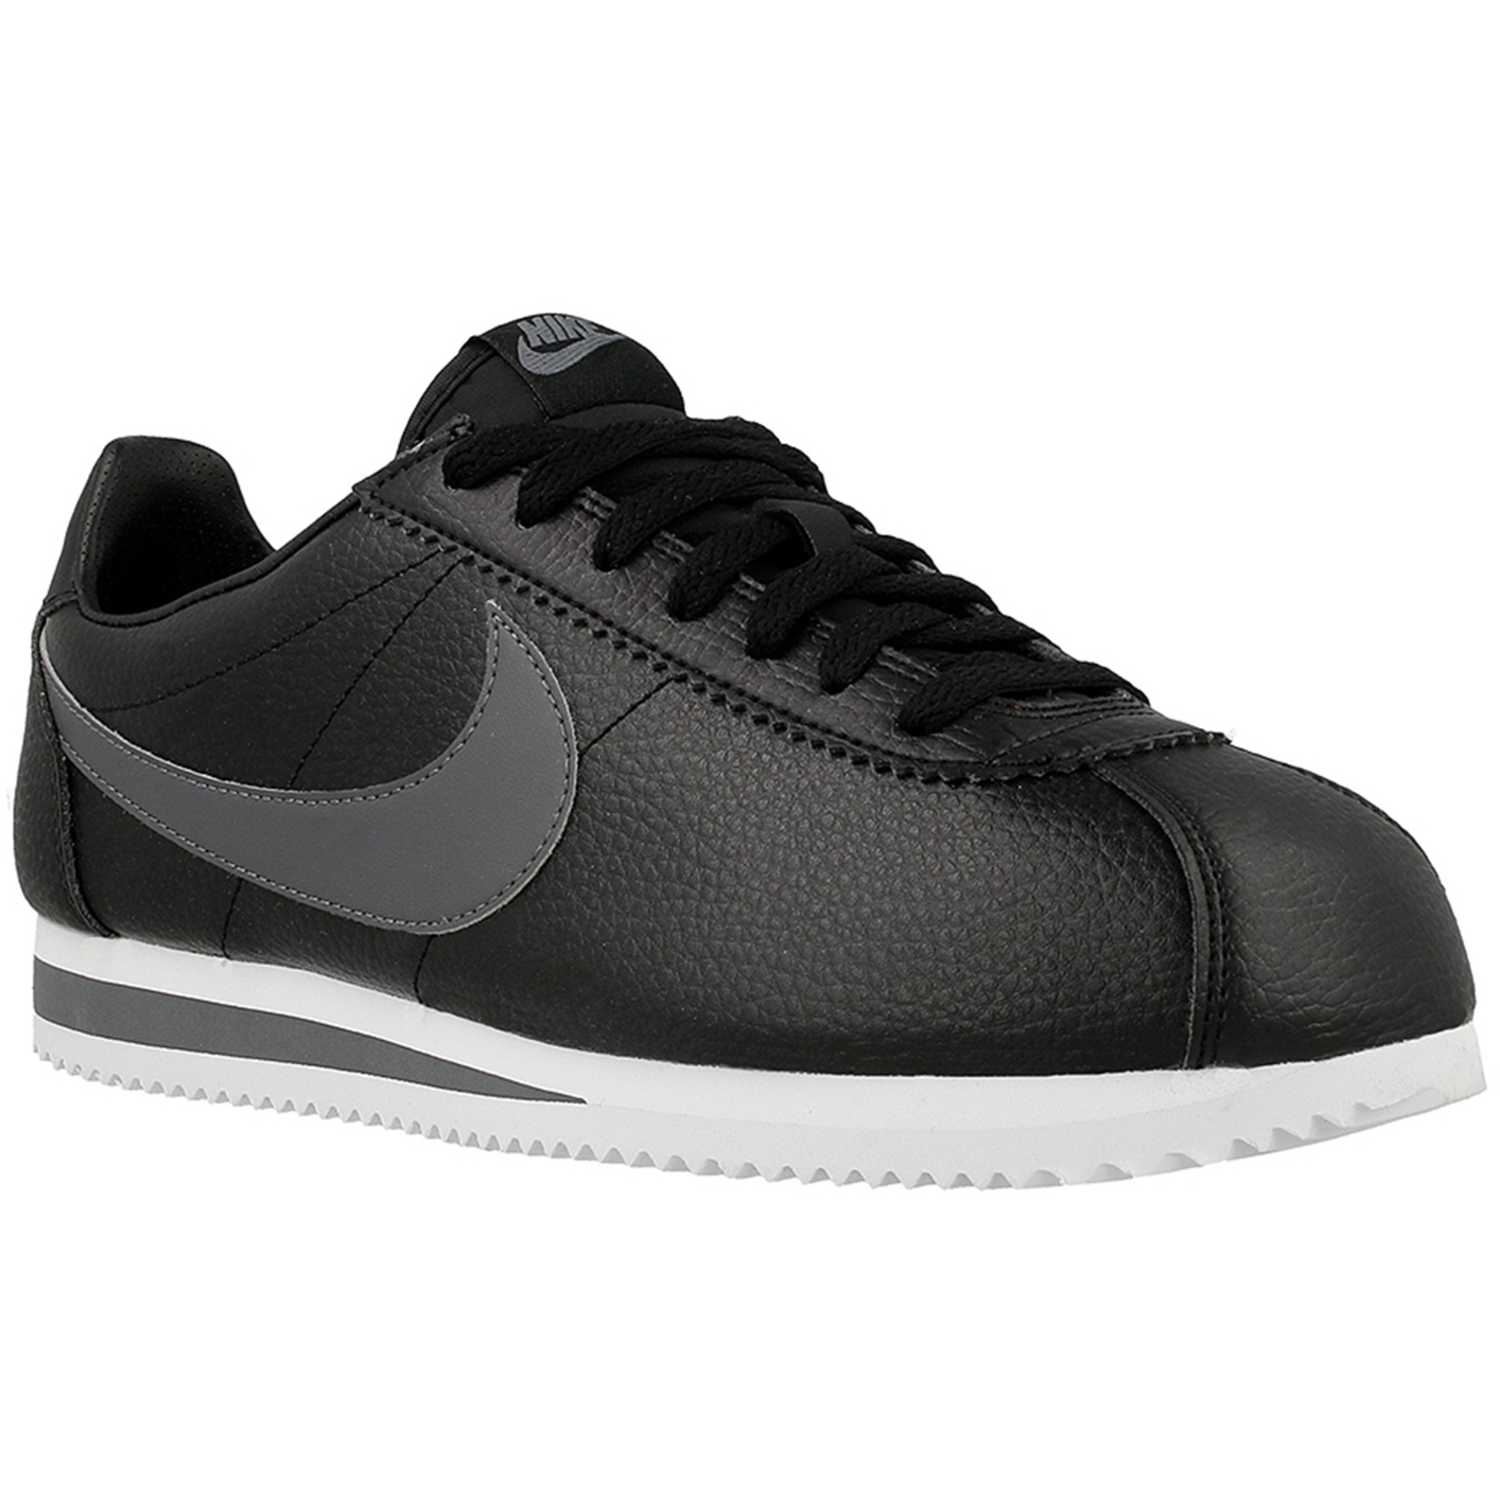 Nike CLASSIC CORTEZ LEATHER NEGRO / GRIS Walking ...